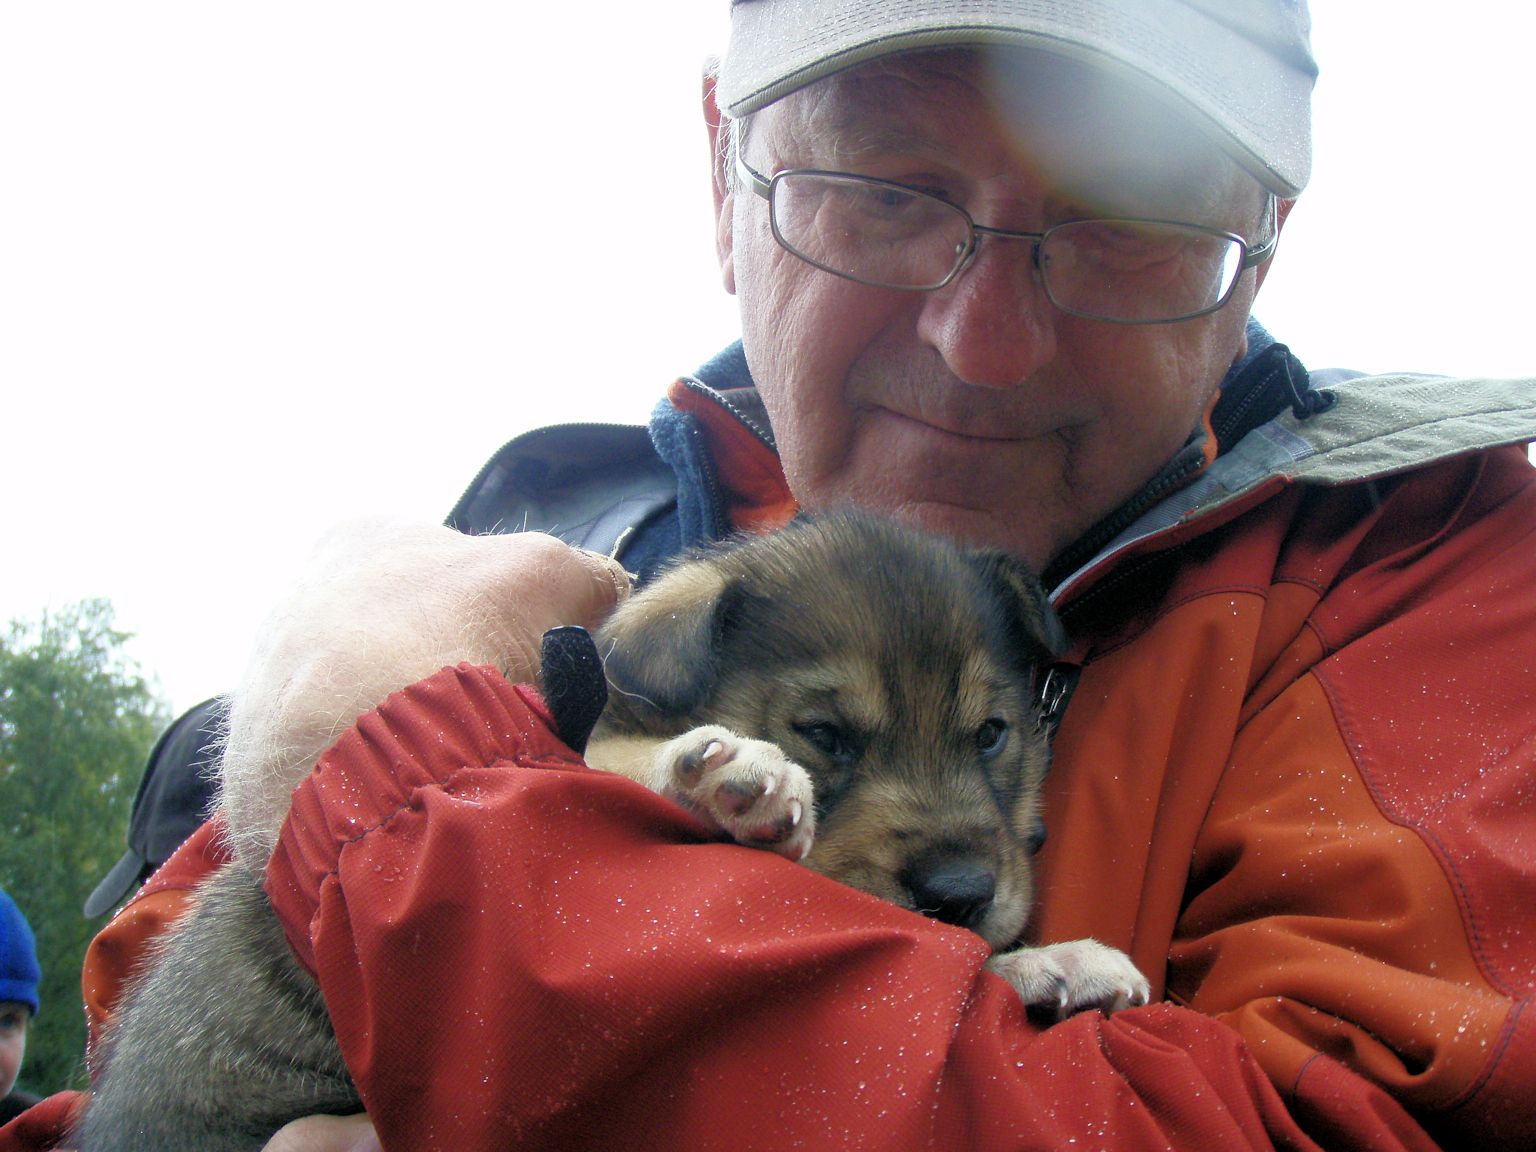 Puppy-cuddling a future sled dog